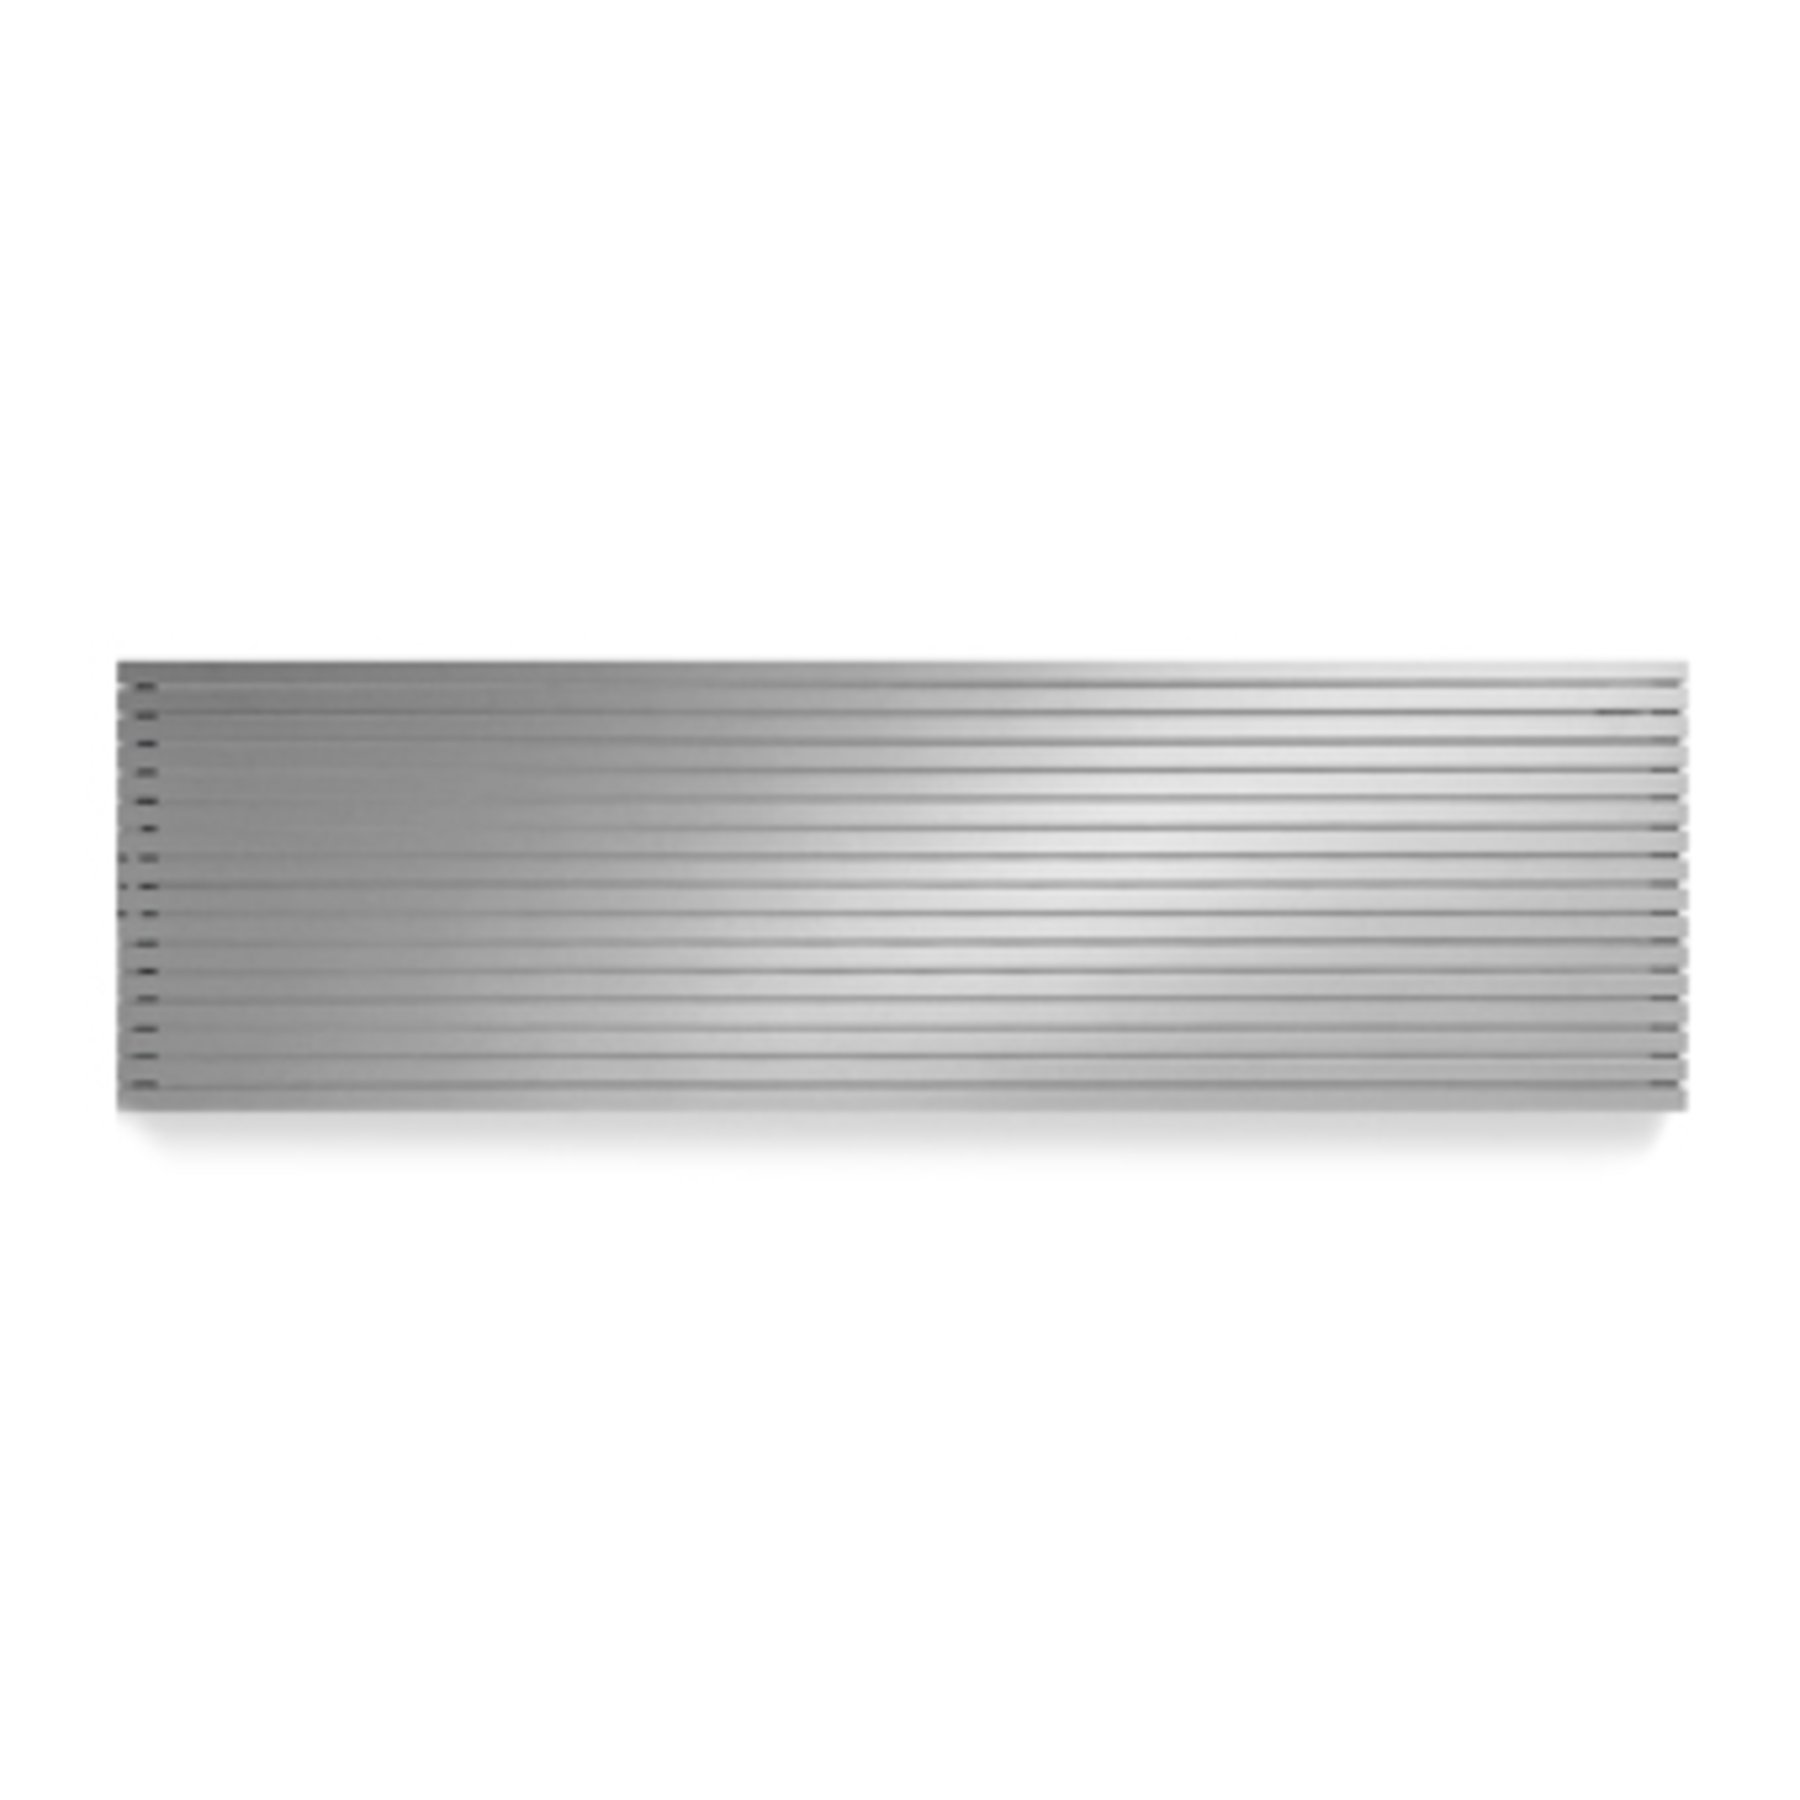 Vasco Carre Plan CPHN2 designradiator horizontaal dubbel 3000x355mm 2295 watt wit alu